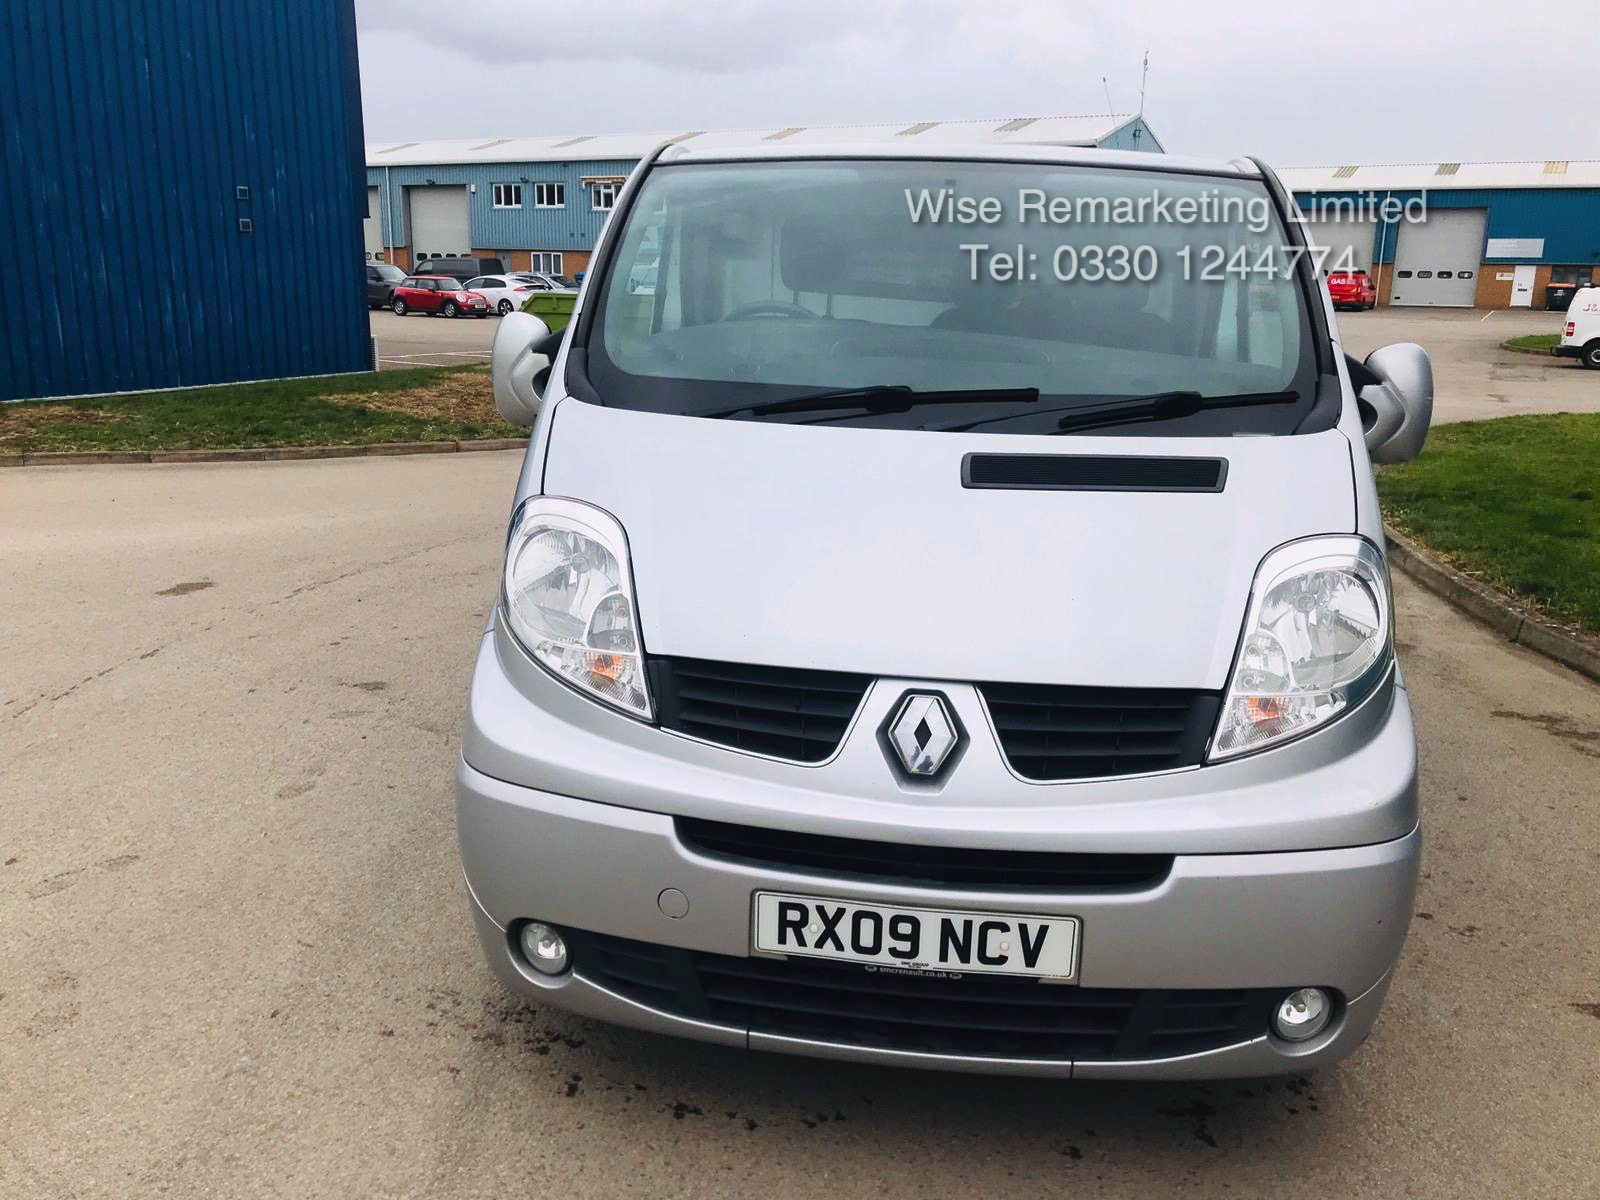 Renault Trafic Sport 2.0 DCI (115 BHP) **Automatic** - 2009 09 Reg - Air Con - Ply lined - Image 2 of 16